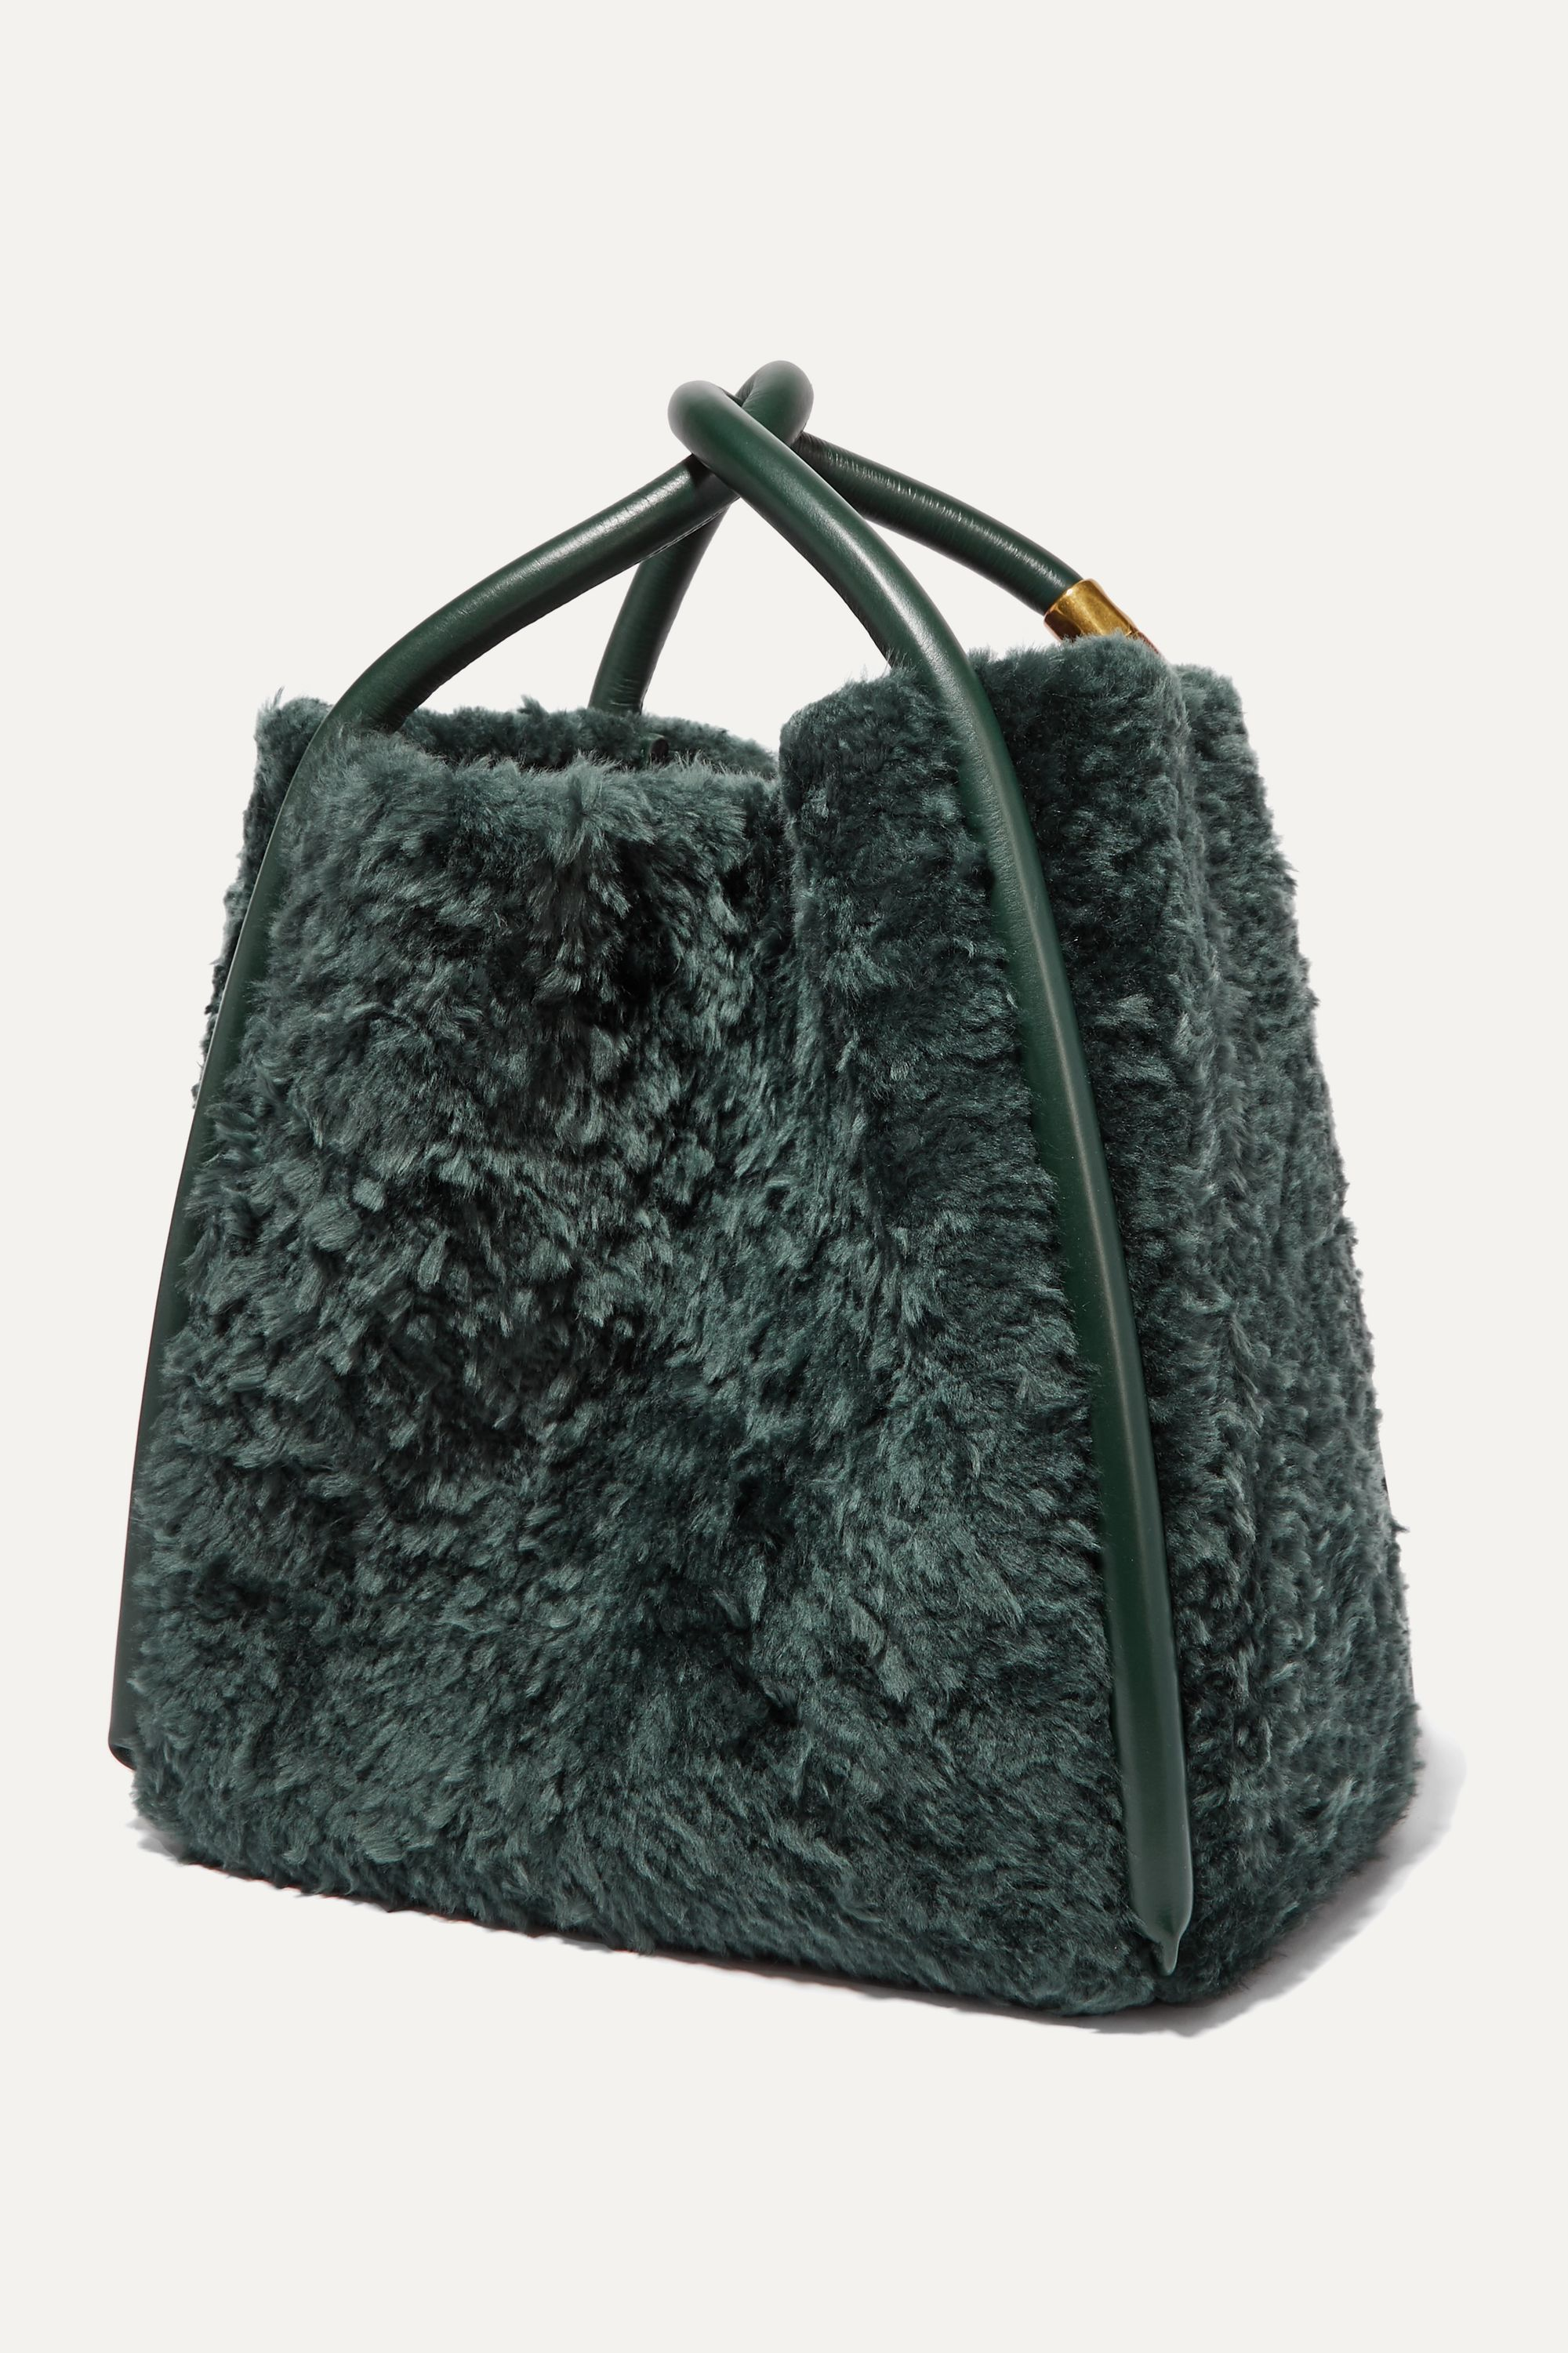 BOYY Lotus 28 leather-trimmed shearling tote